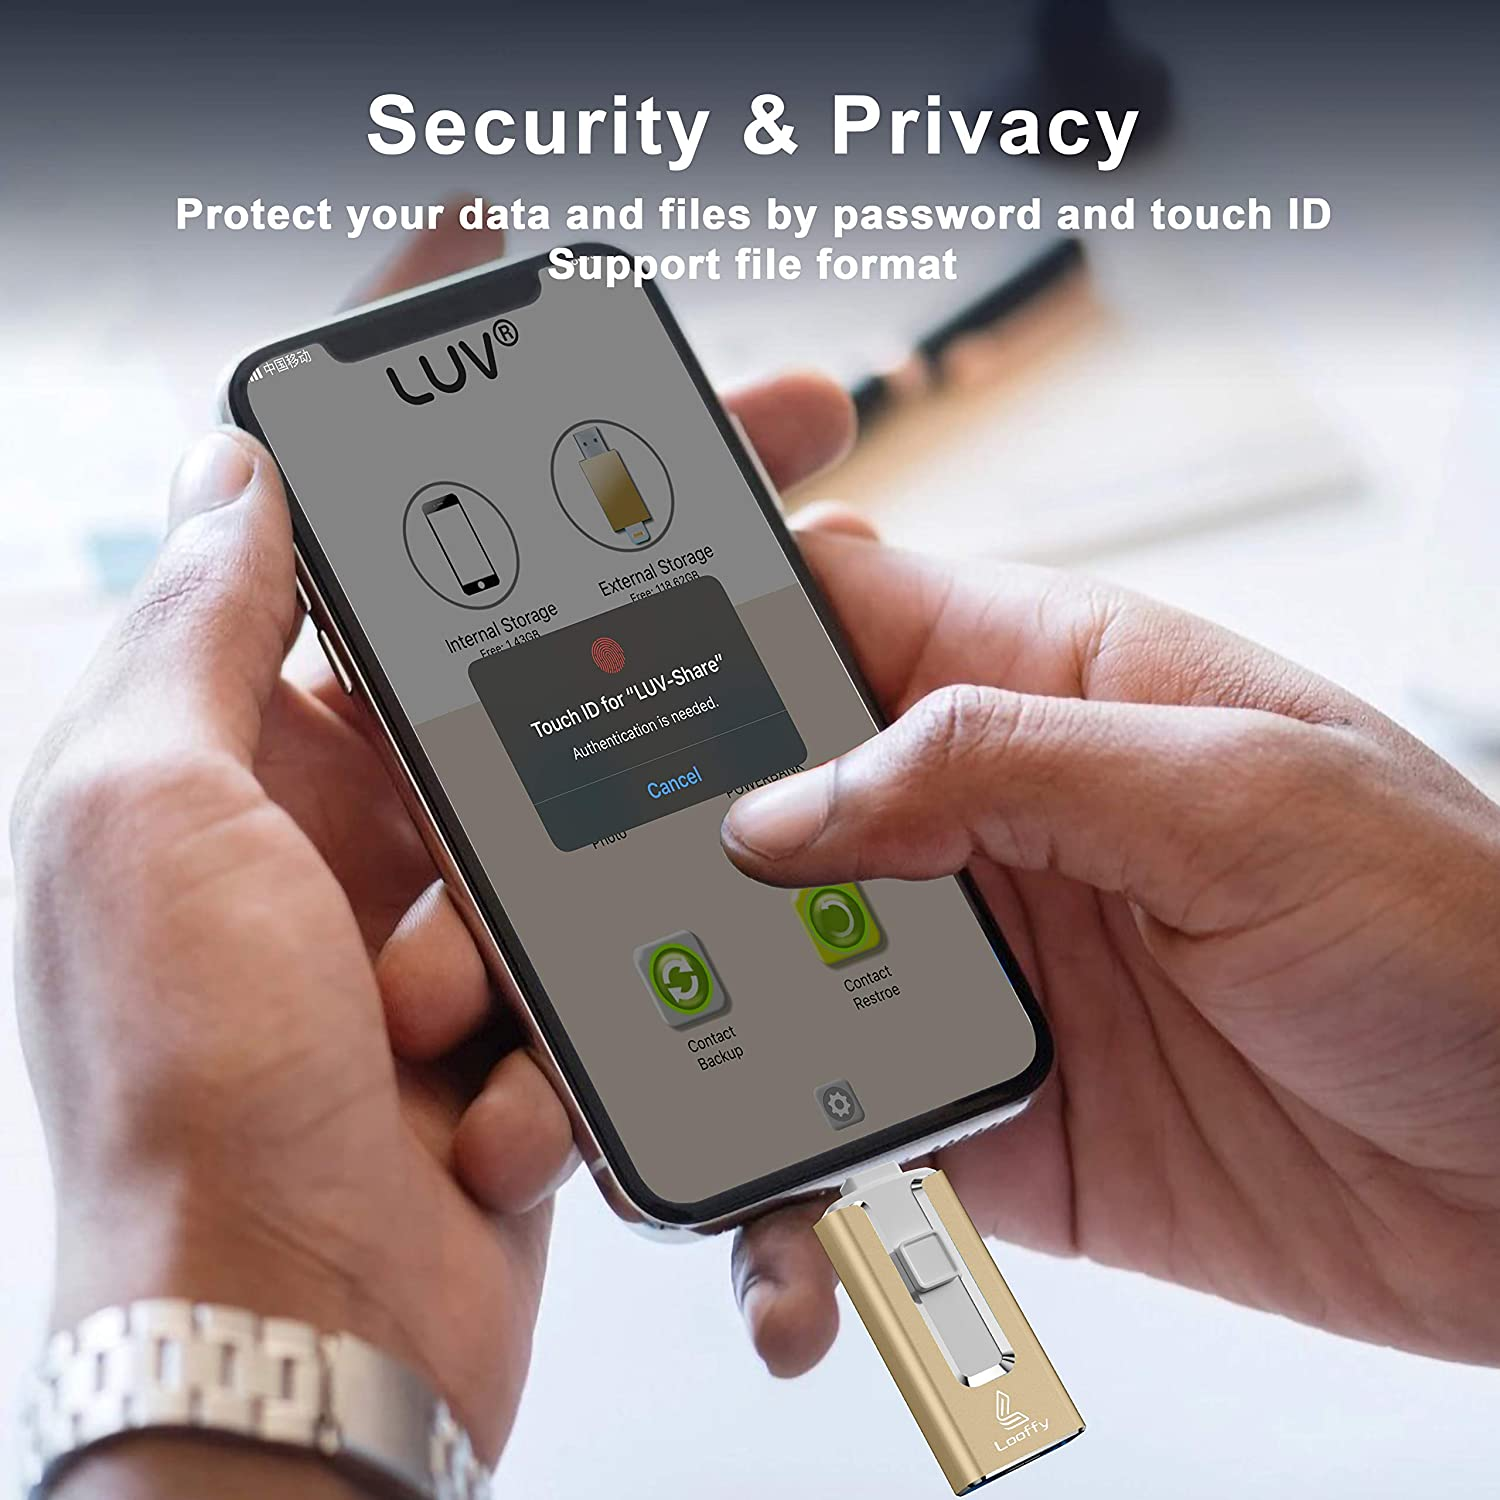 USB Flash Drive for Phone, 32GB 4 in 1 Memory Stick Looffy USB 3.0 Type C Thumb Drive for Photos, iOS Photostick Mobile External Storage Compatible with Phone/Pad/OTG Android/PC (Gold)